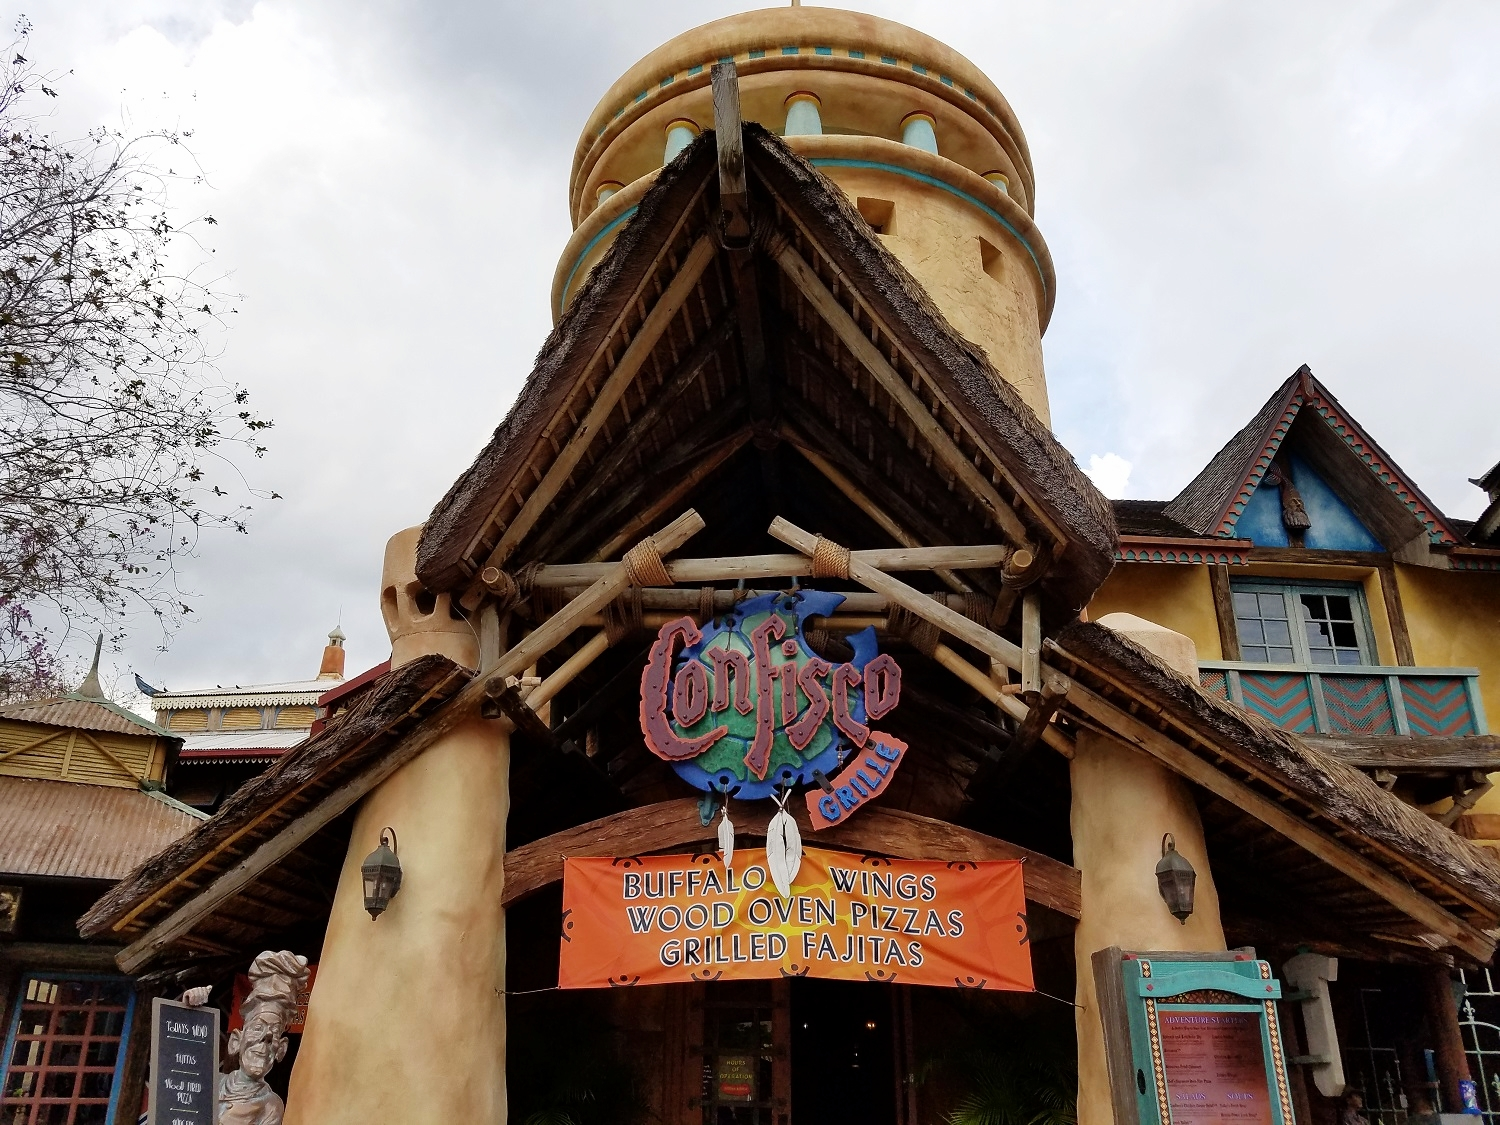 Confisco Grille in Universal's Islands of Adventure